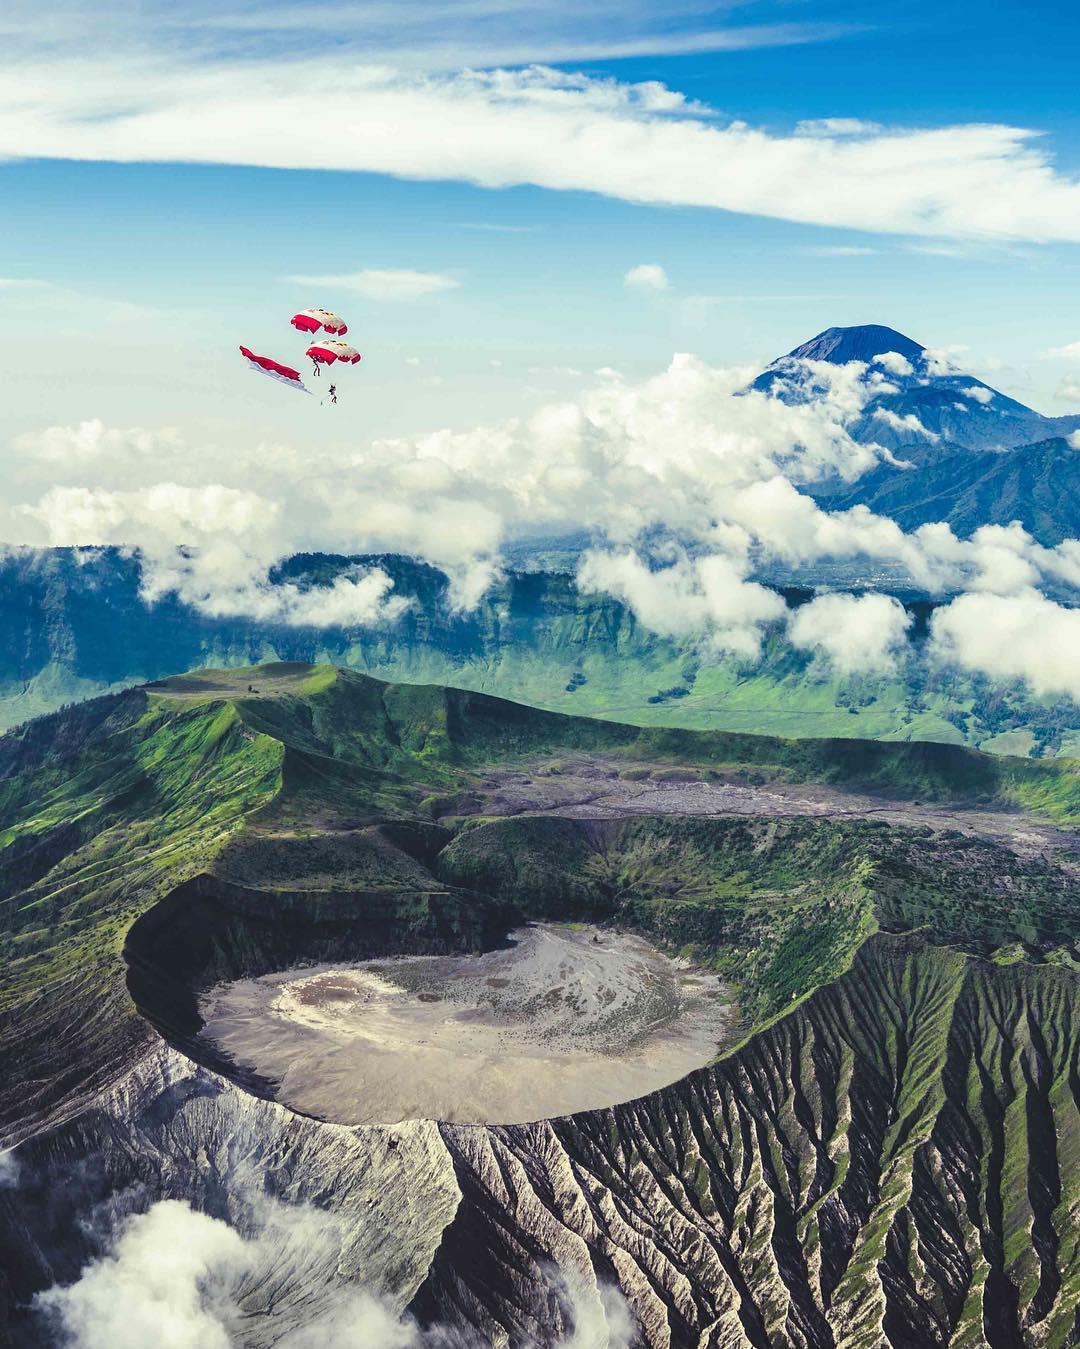 Name the country this photo was taken in. *Hint: Look closely at the Flag. #skydiving #adventure #volcano